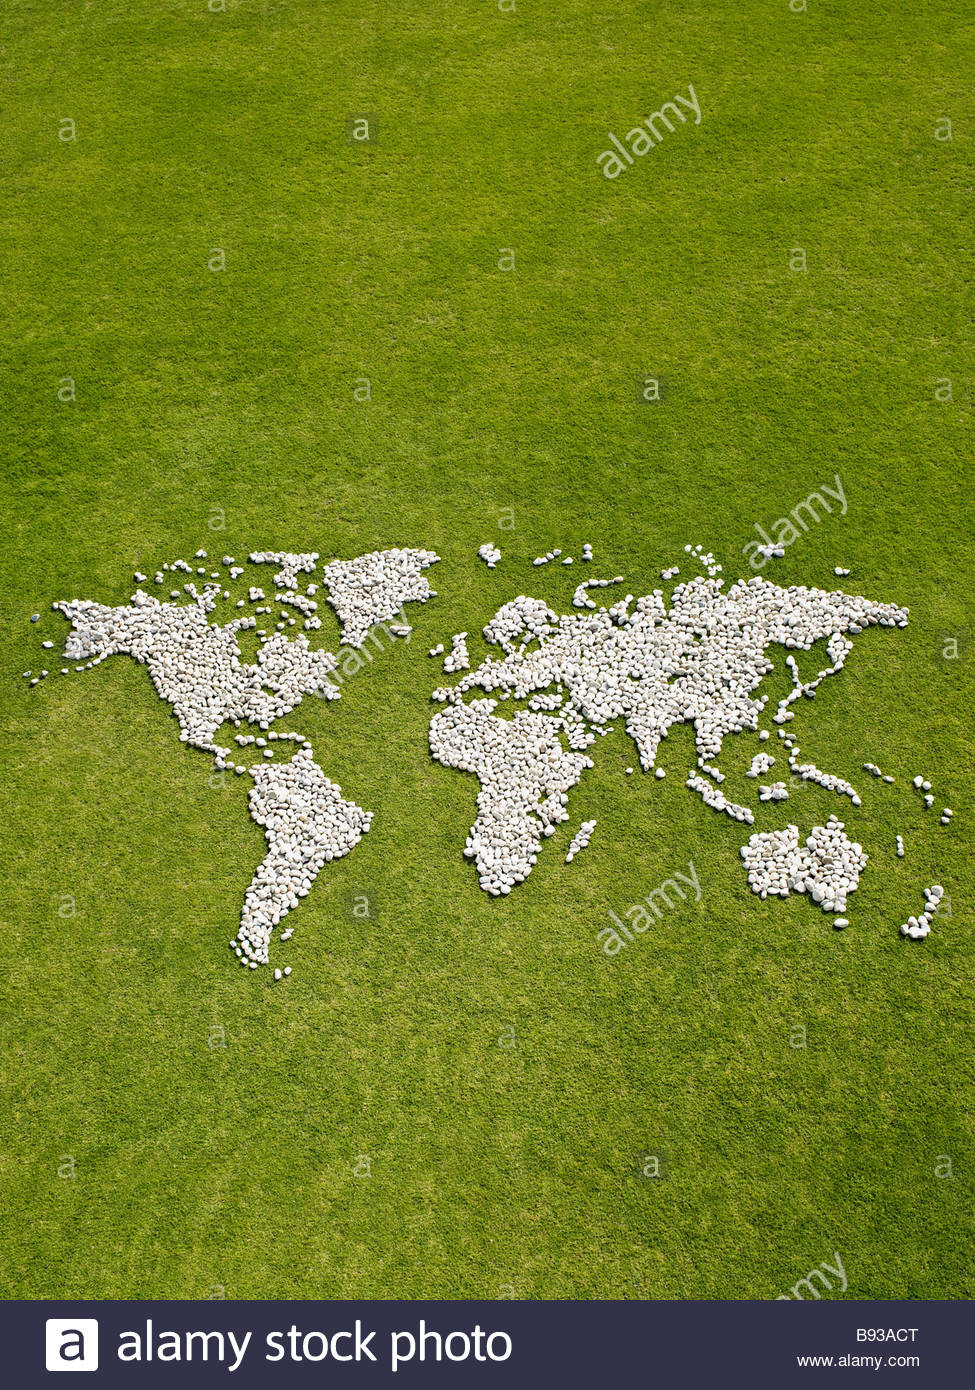 World map made of rocks Stock Photo